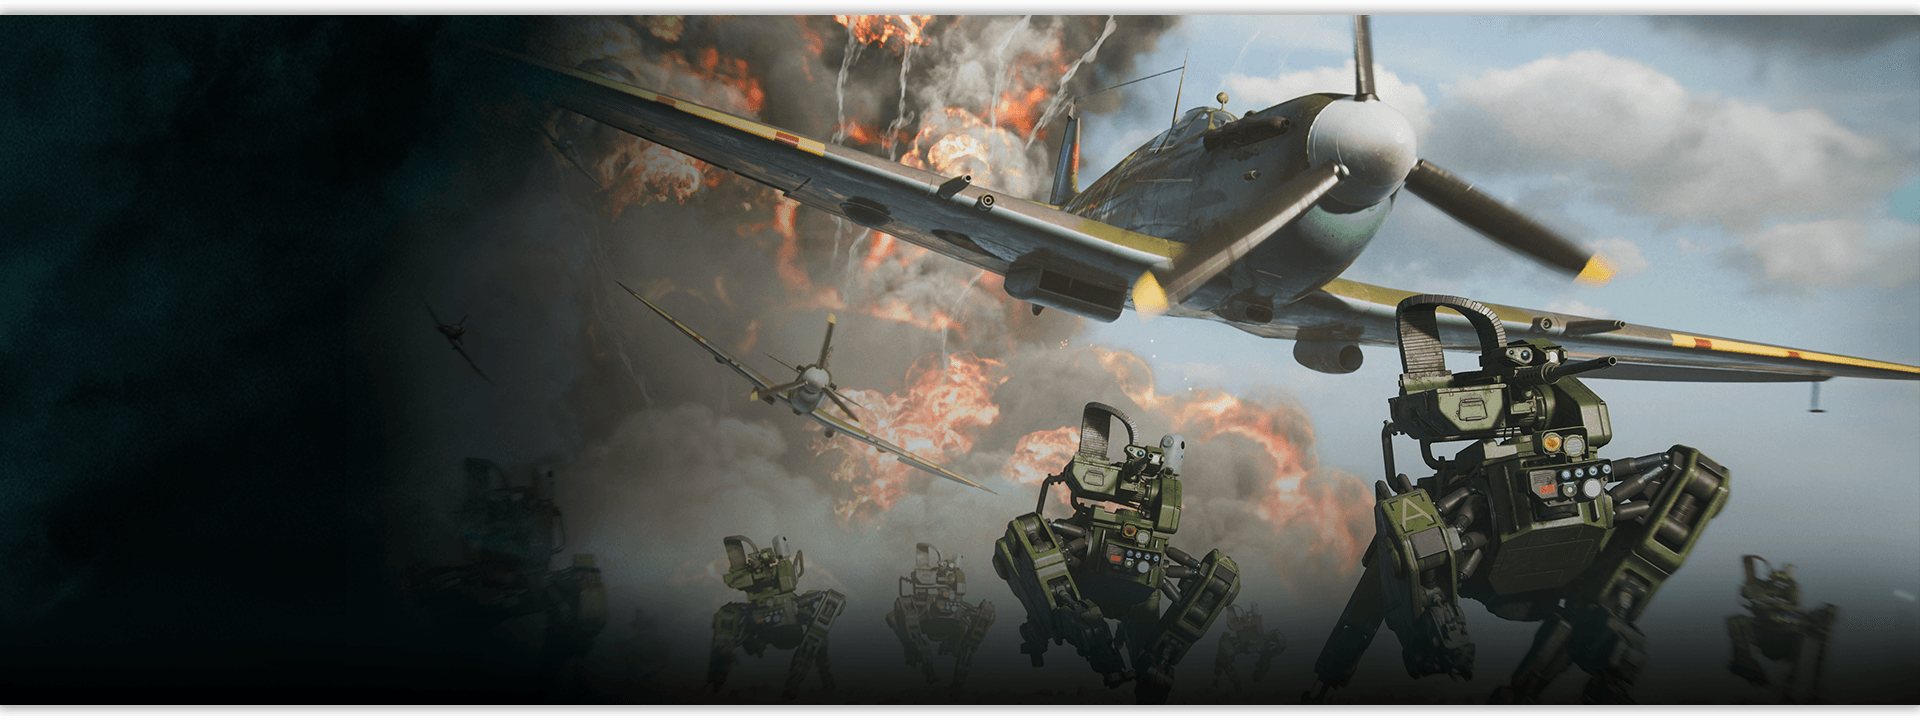 EOD bots and low flying planes flee from an explosion